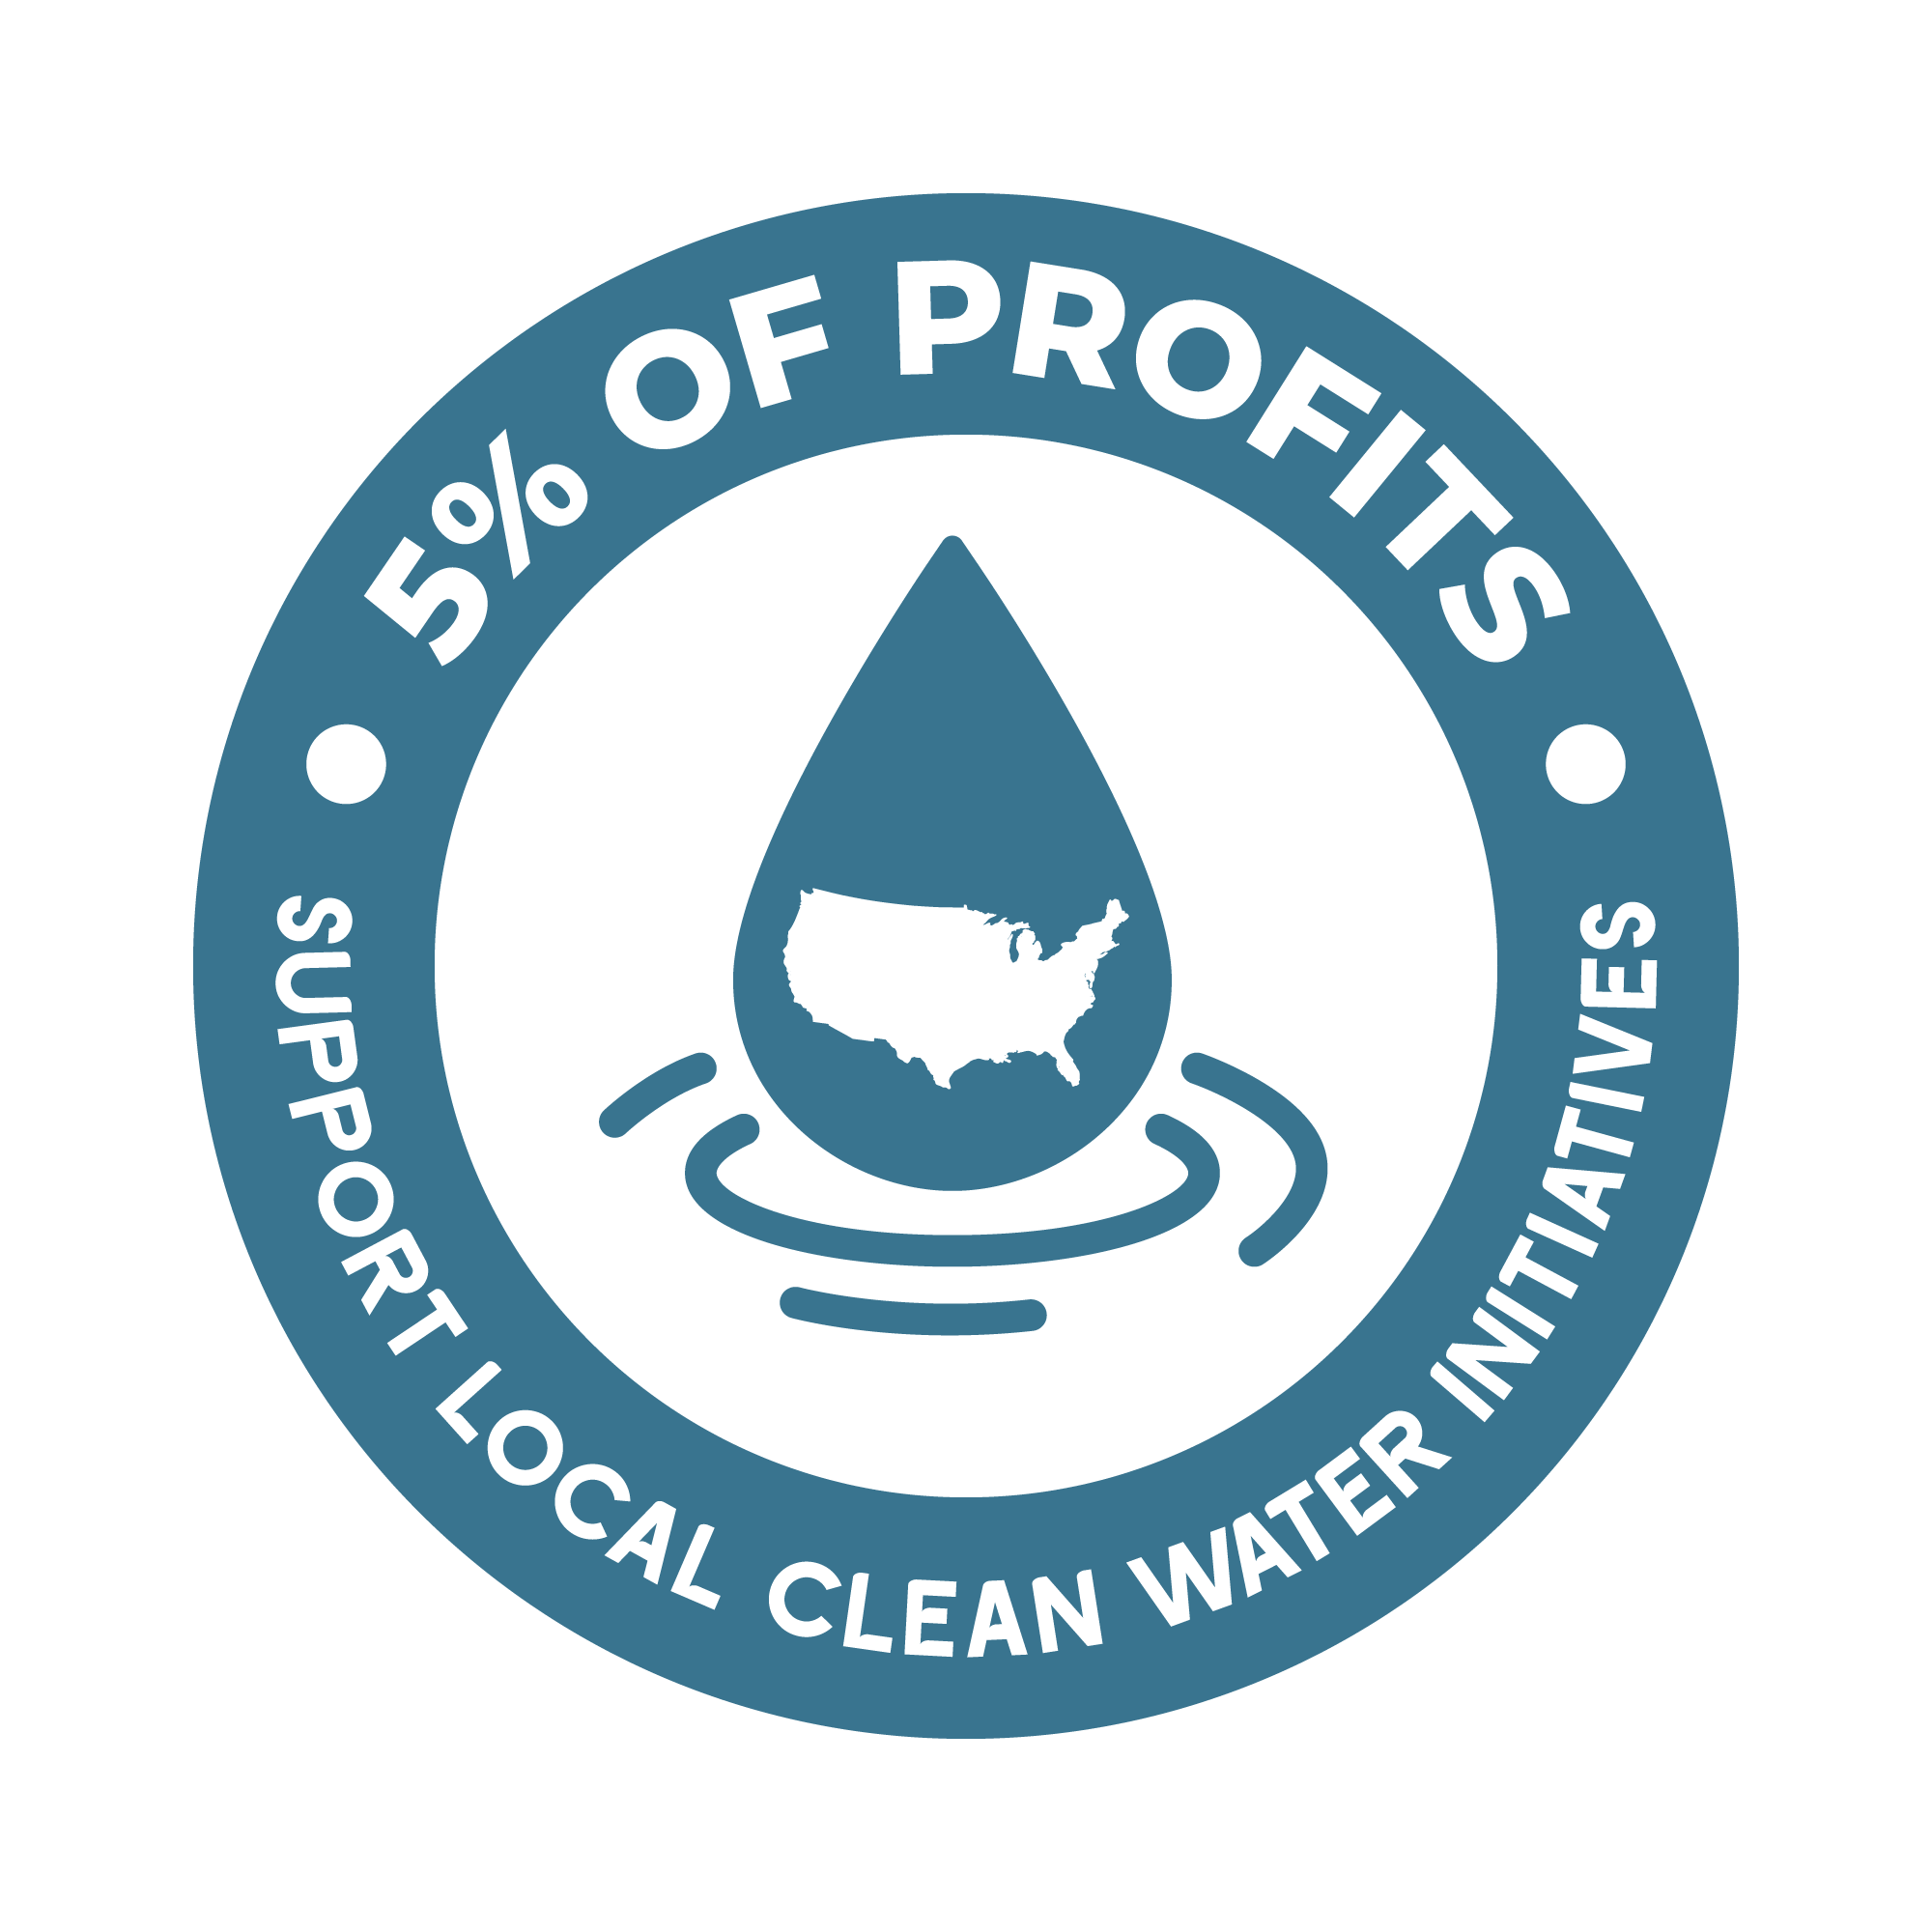 5% of Profits Support Local Clean Water Initiatives